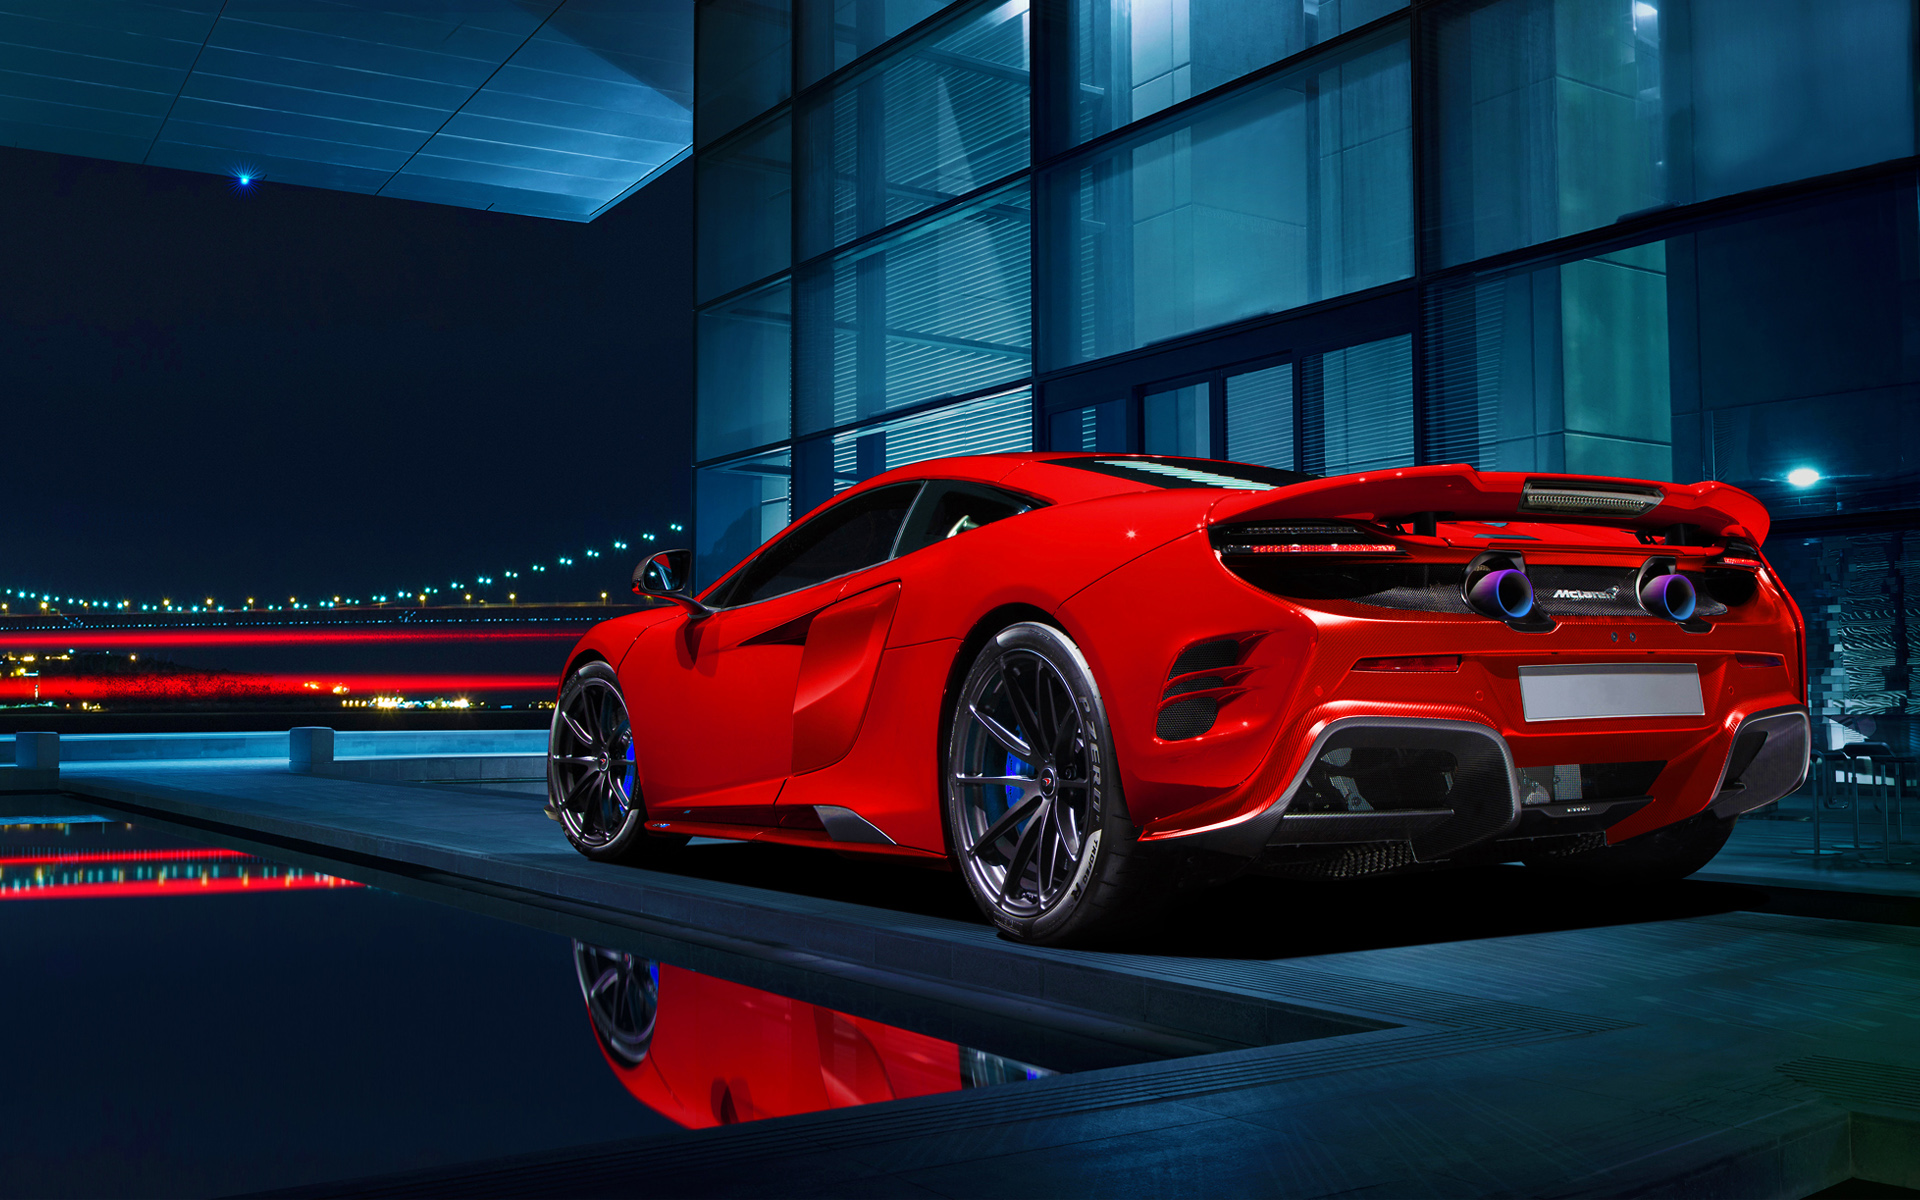 2015 Mclaren 675 LT Wallpaper